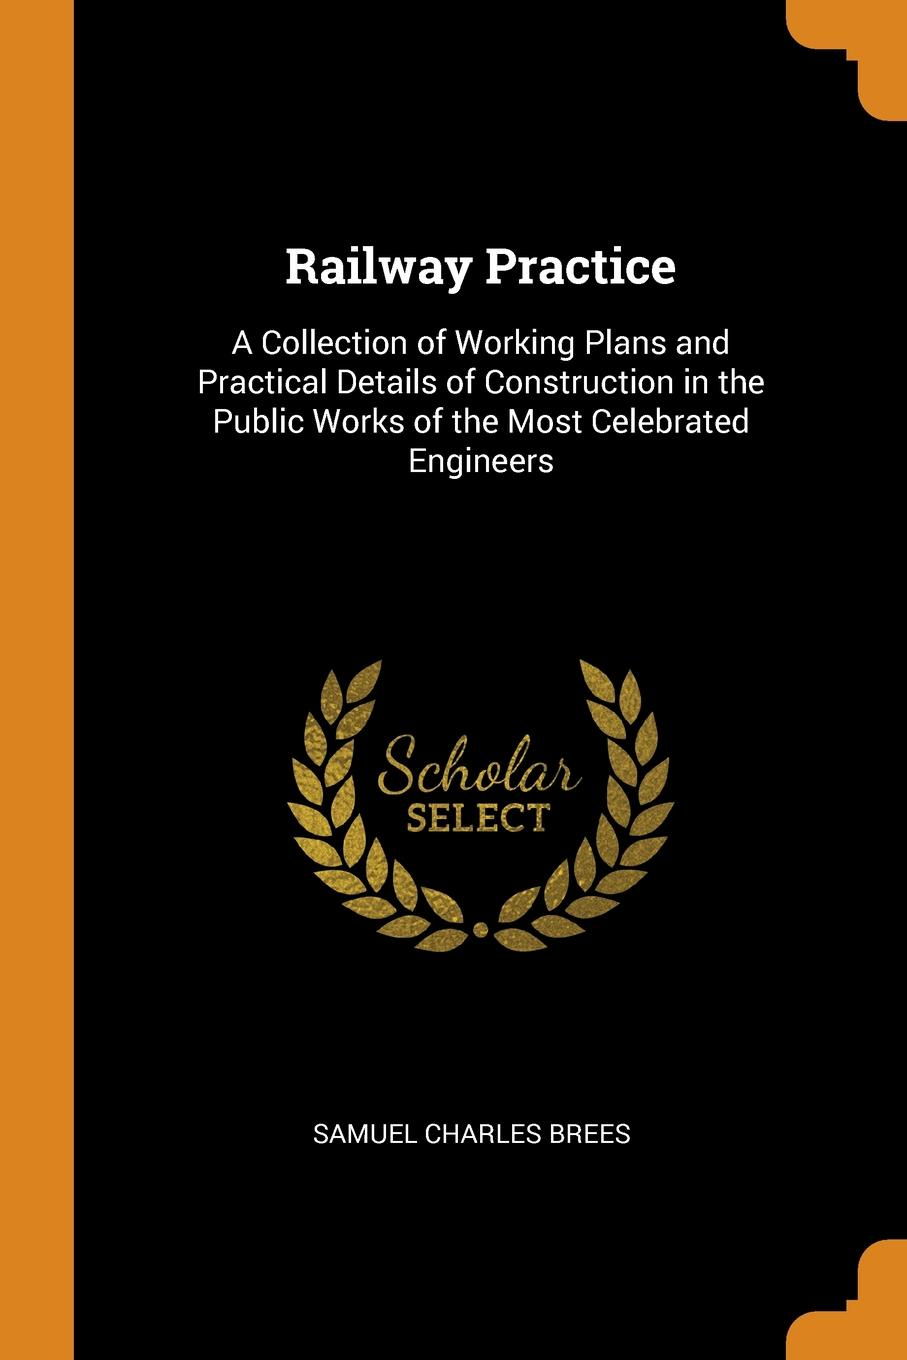 Samuel Charles Brees. Railway Practice. A Collection of Working Plans and Practical Details of Construction in the Public Works of the Most Celebrated Engineers